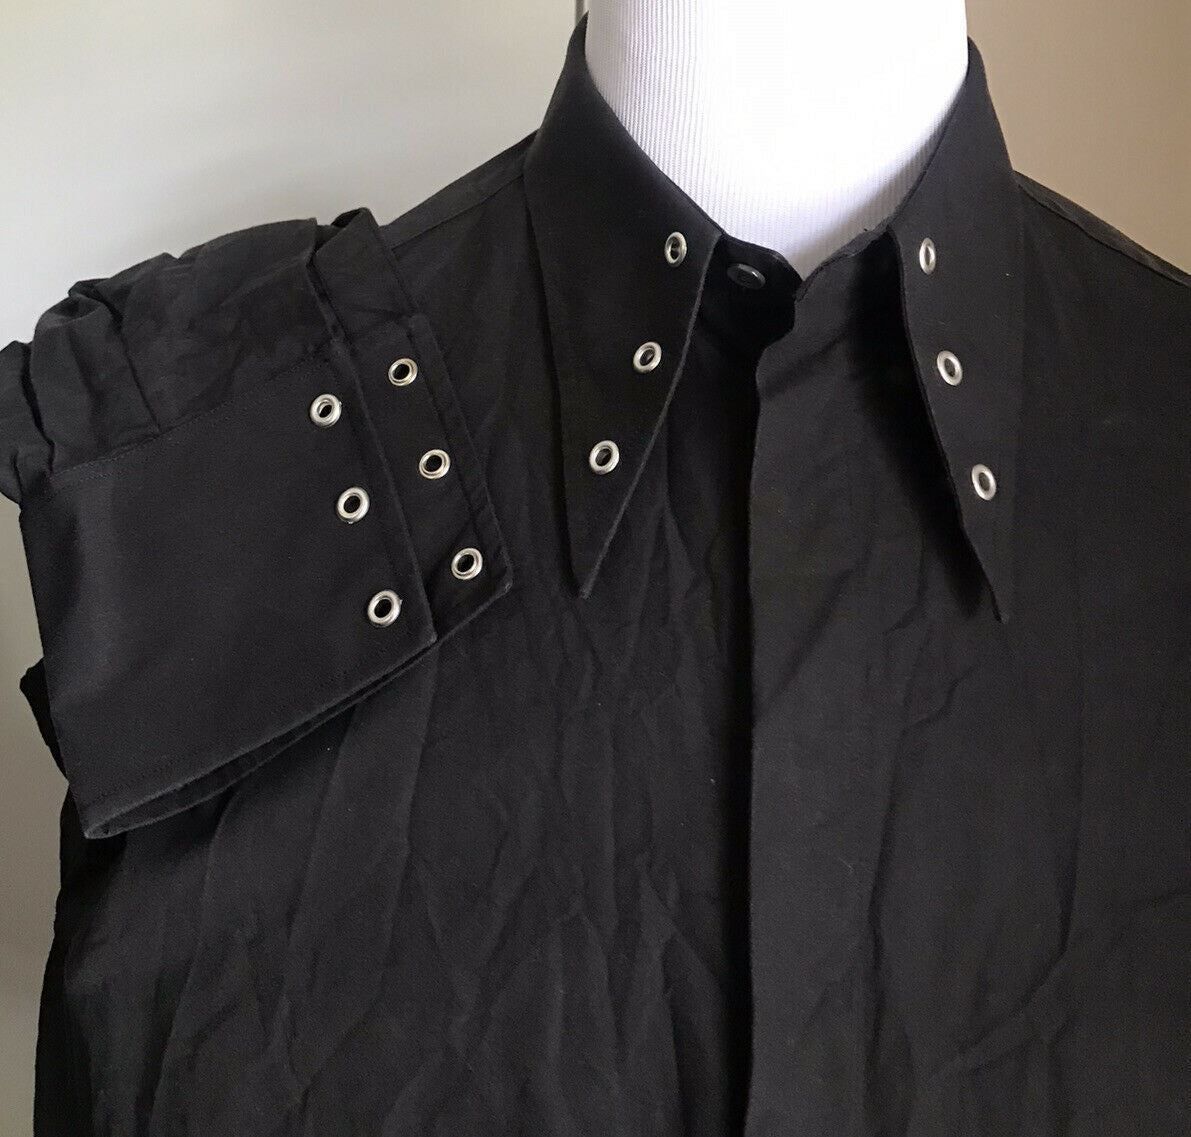 New $980 Gucci Men Heavy Cotton Popeline Rock Shirt Black XXL Italy